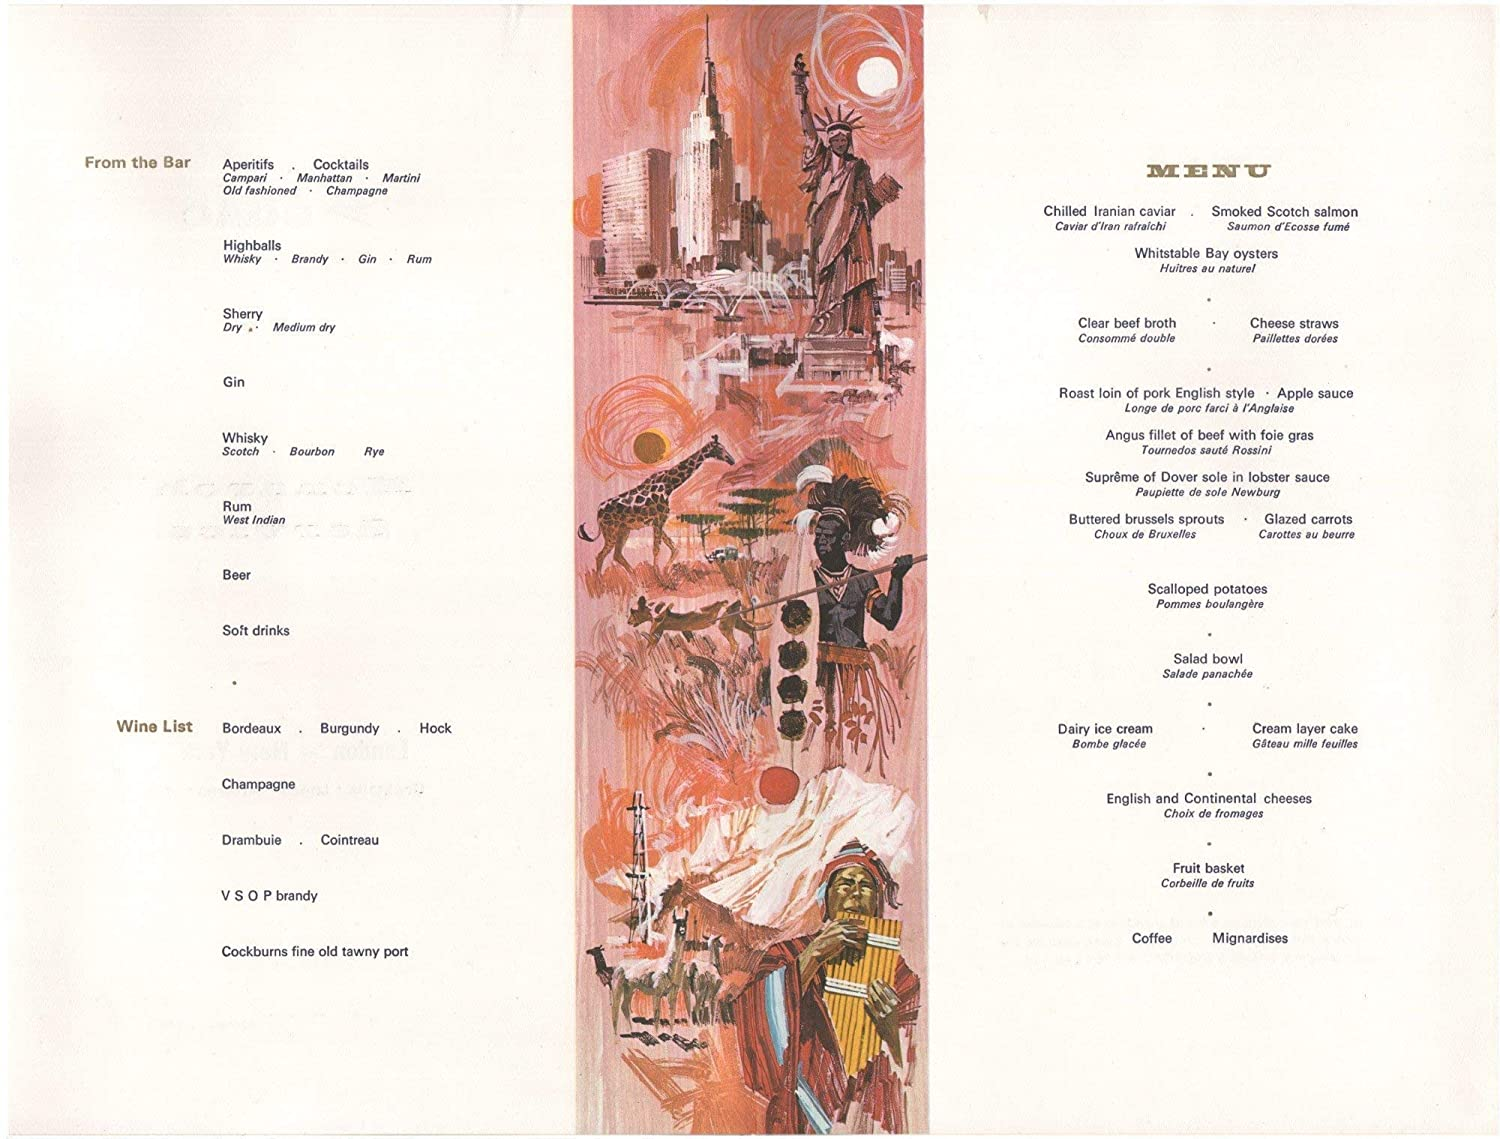 Vintage 1967 British American Travel Luxury Airplane Retro Menu Art Print New York BOAC Monarch Service London